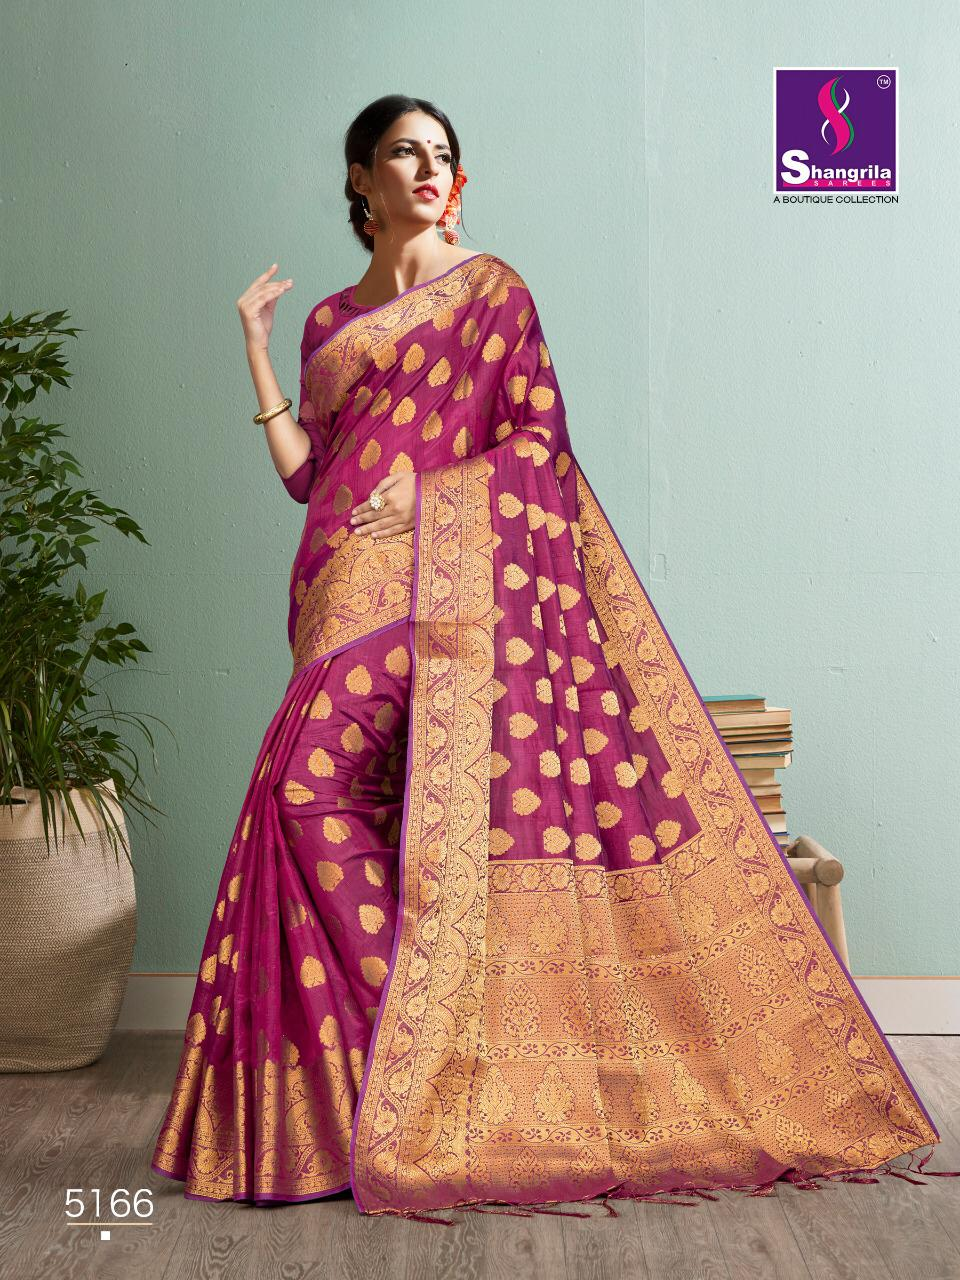 Shangrila Vasansi Silk 2 collection 10